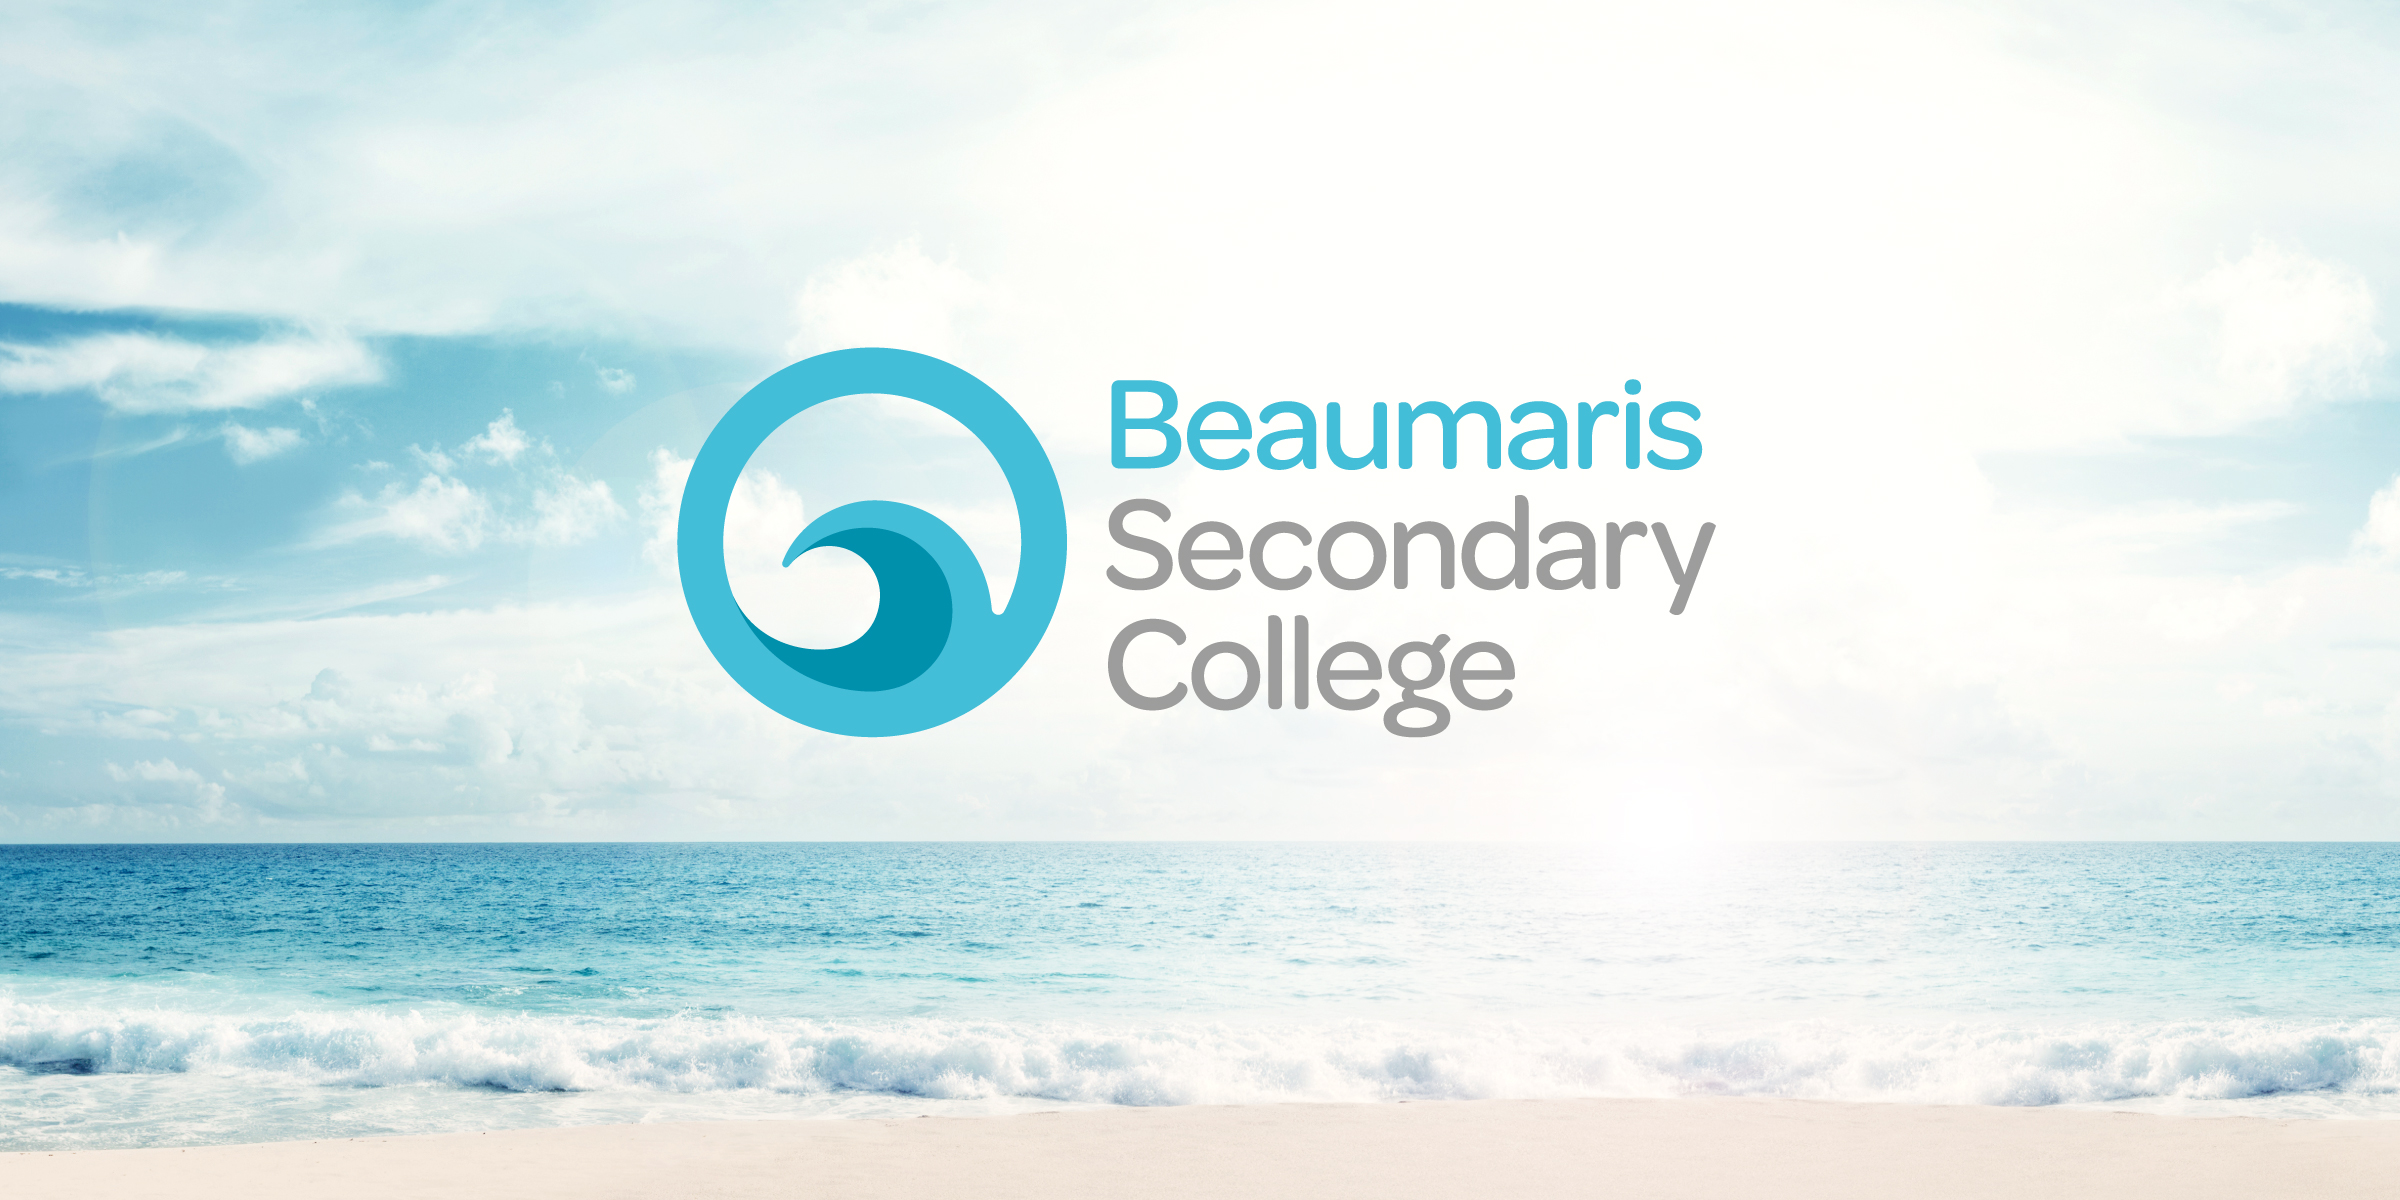 Beaumaris Secondary College Brand Identity Design